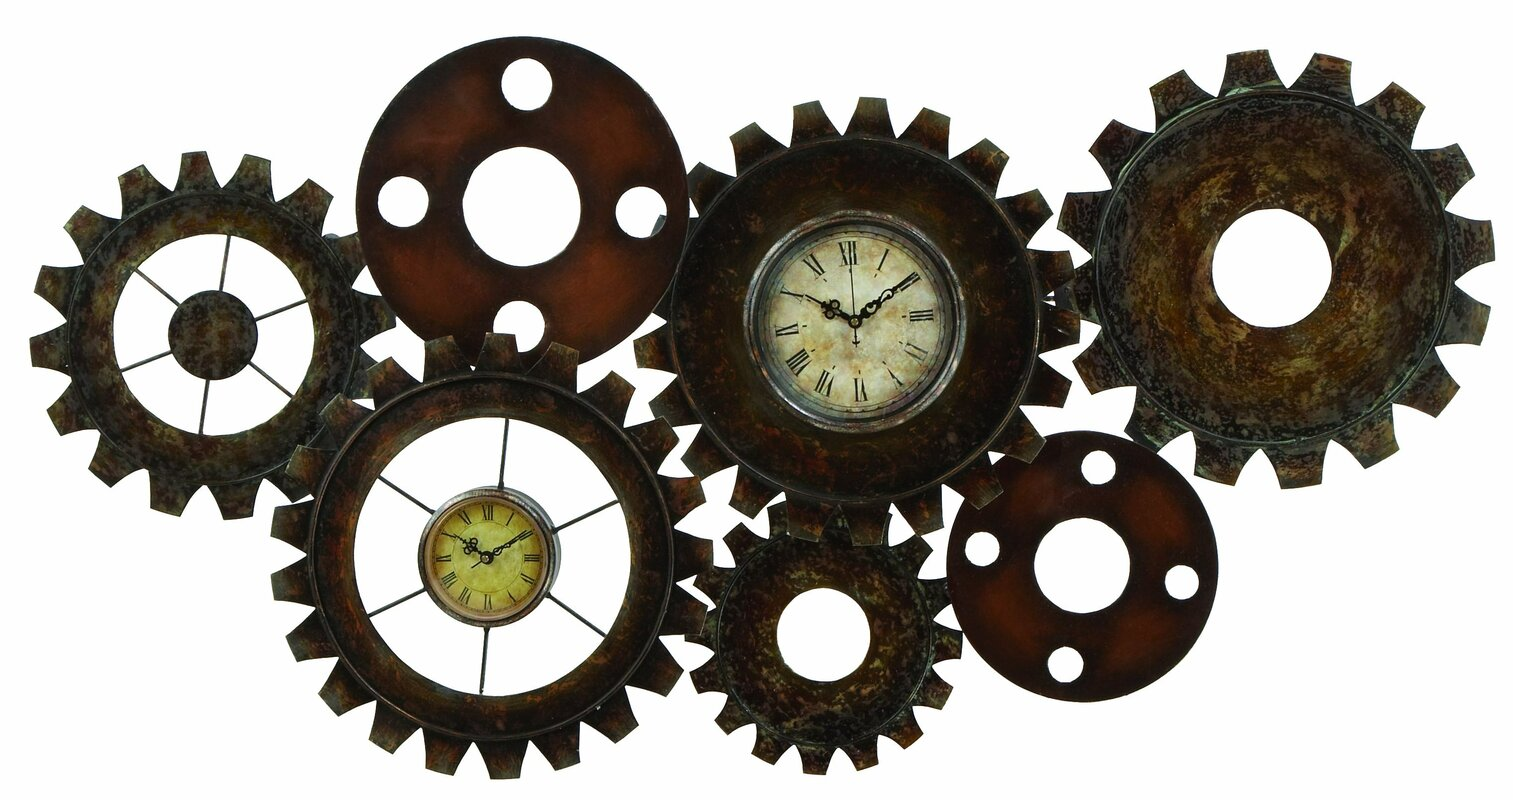 Abchomecollection steampunk inspired wall clock reviews wayfair steampunk inspired wall clock amipublicfo Images